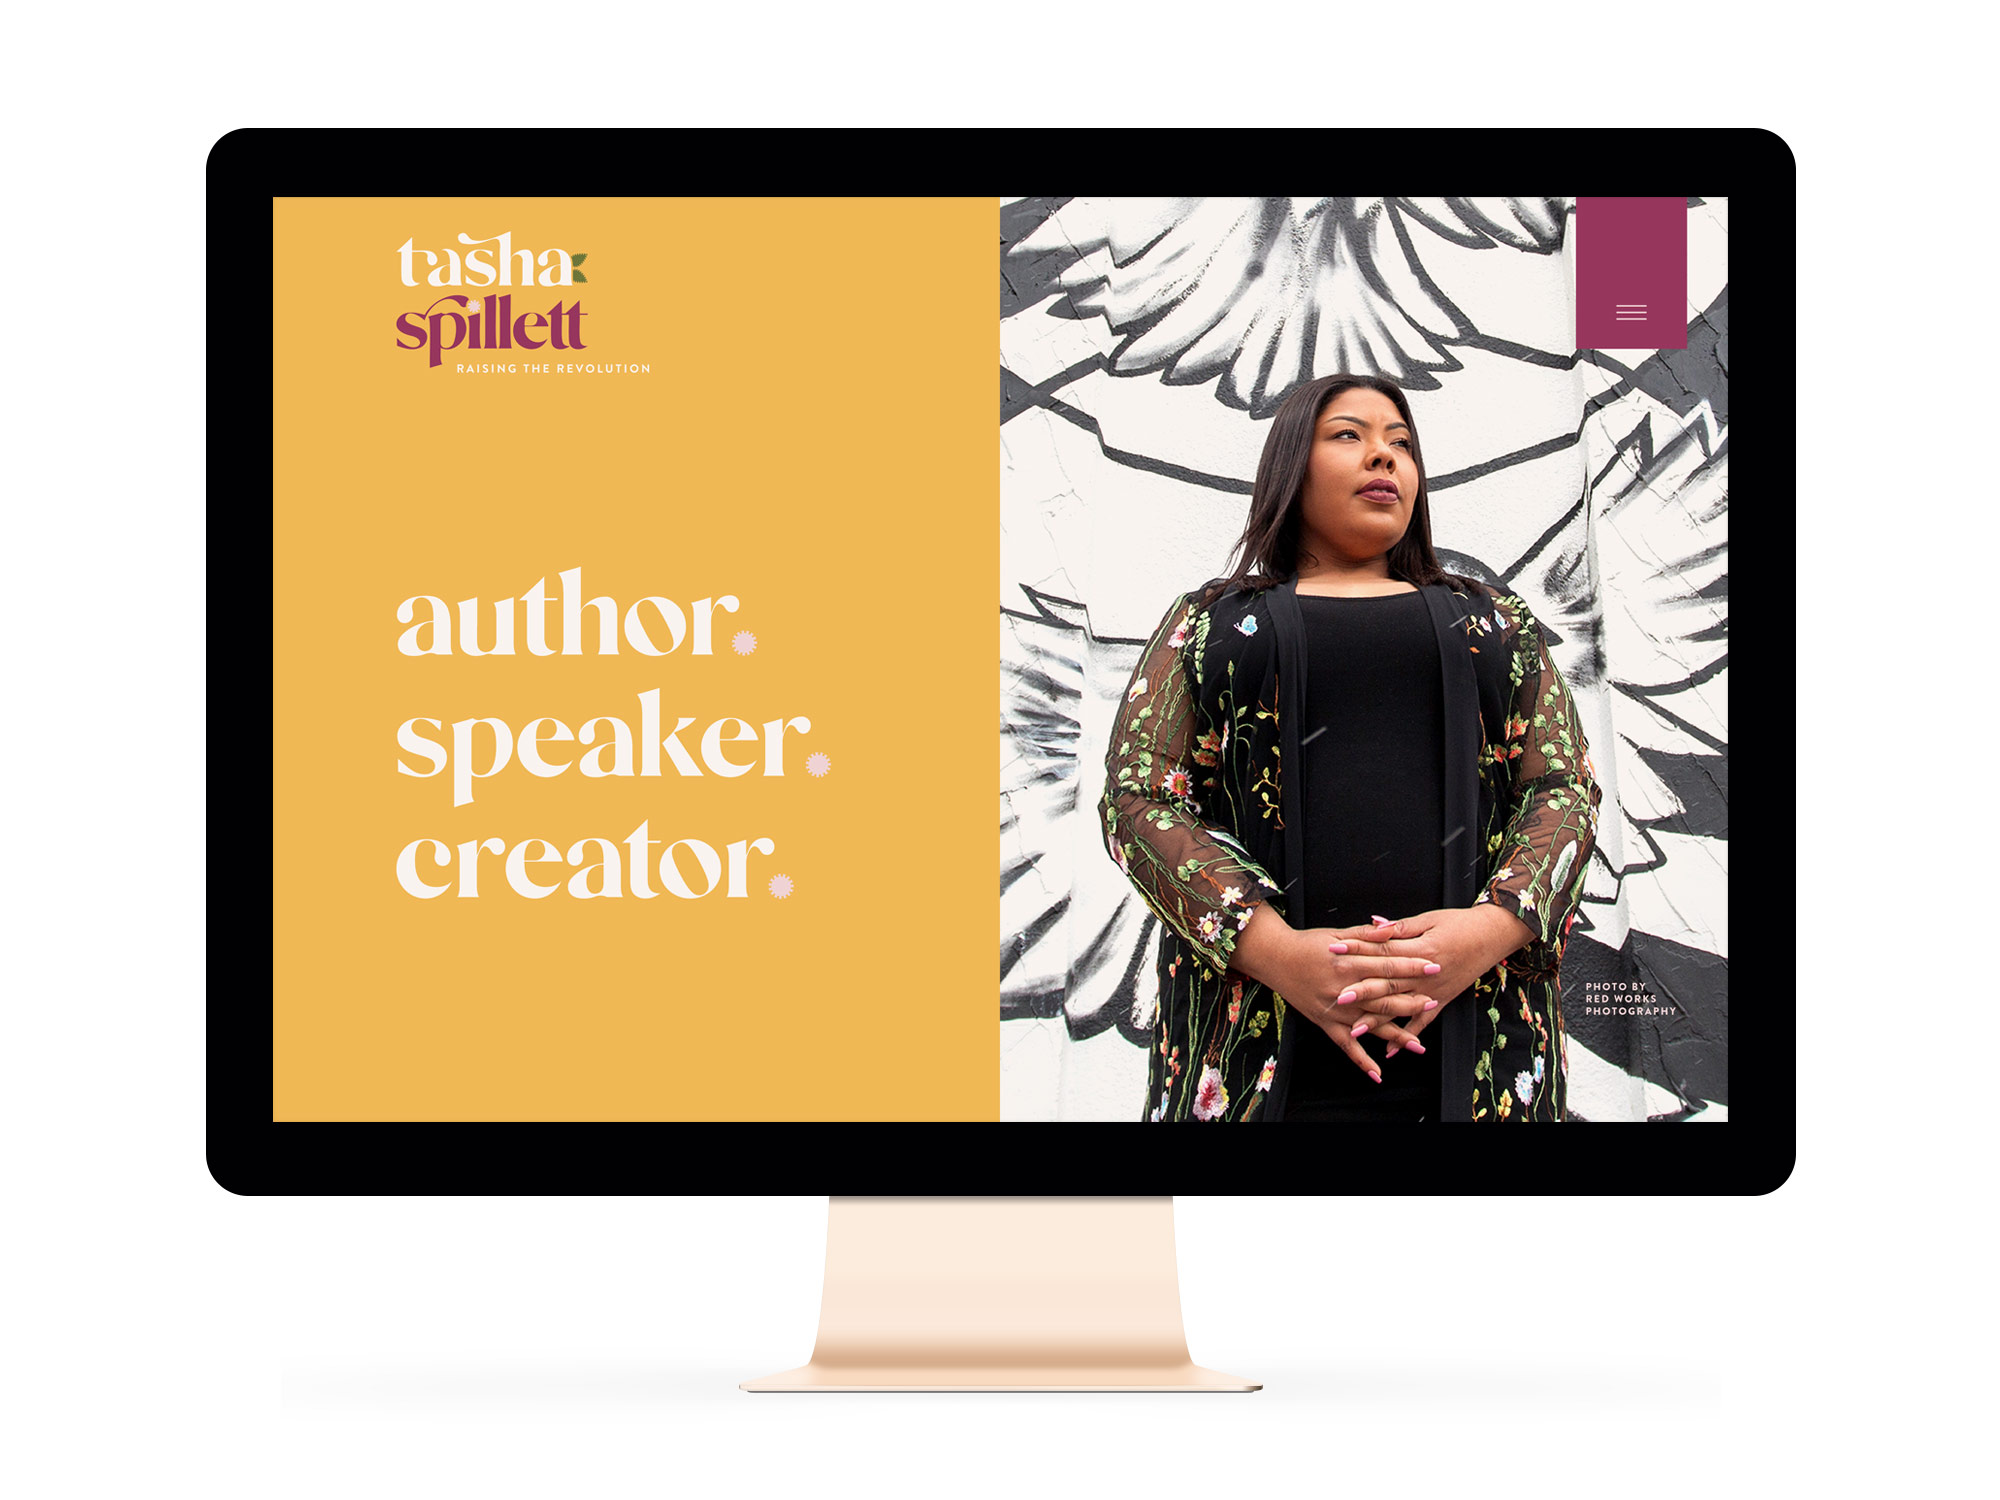 Branding and Website Design for Indigenous and Black Feminist Entrepreneur and Author Tasha Spillett